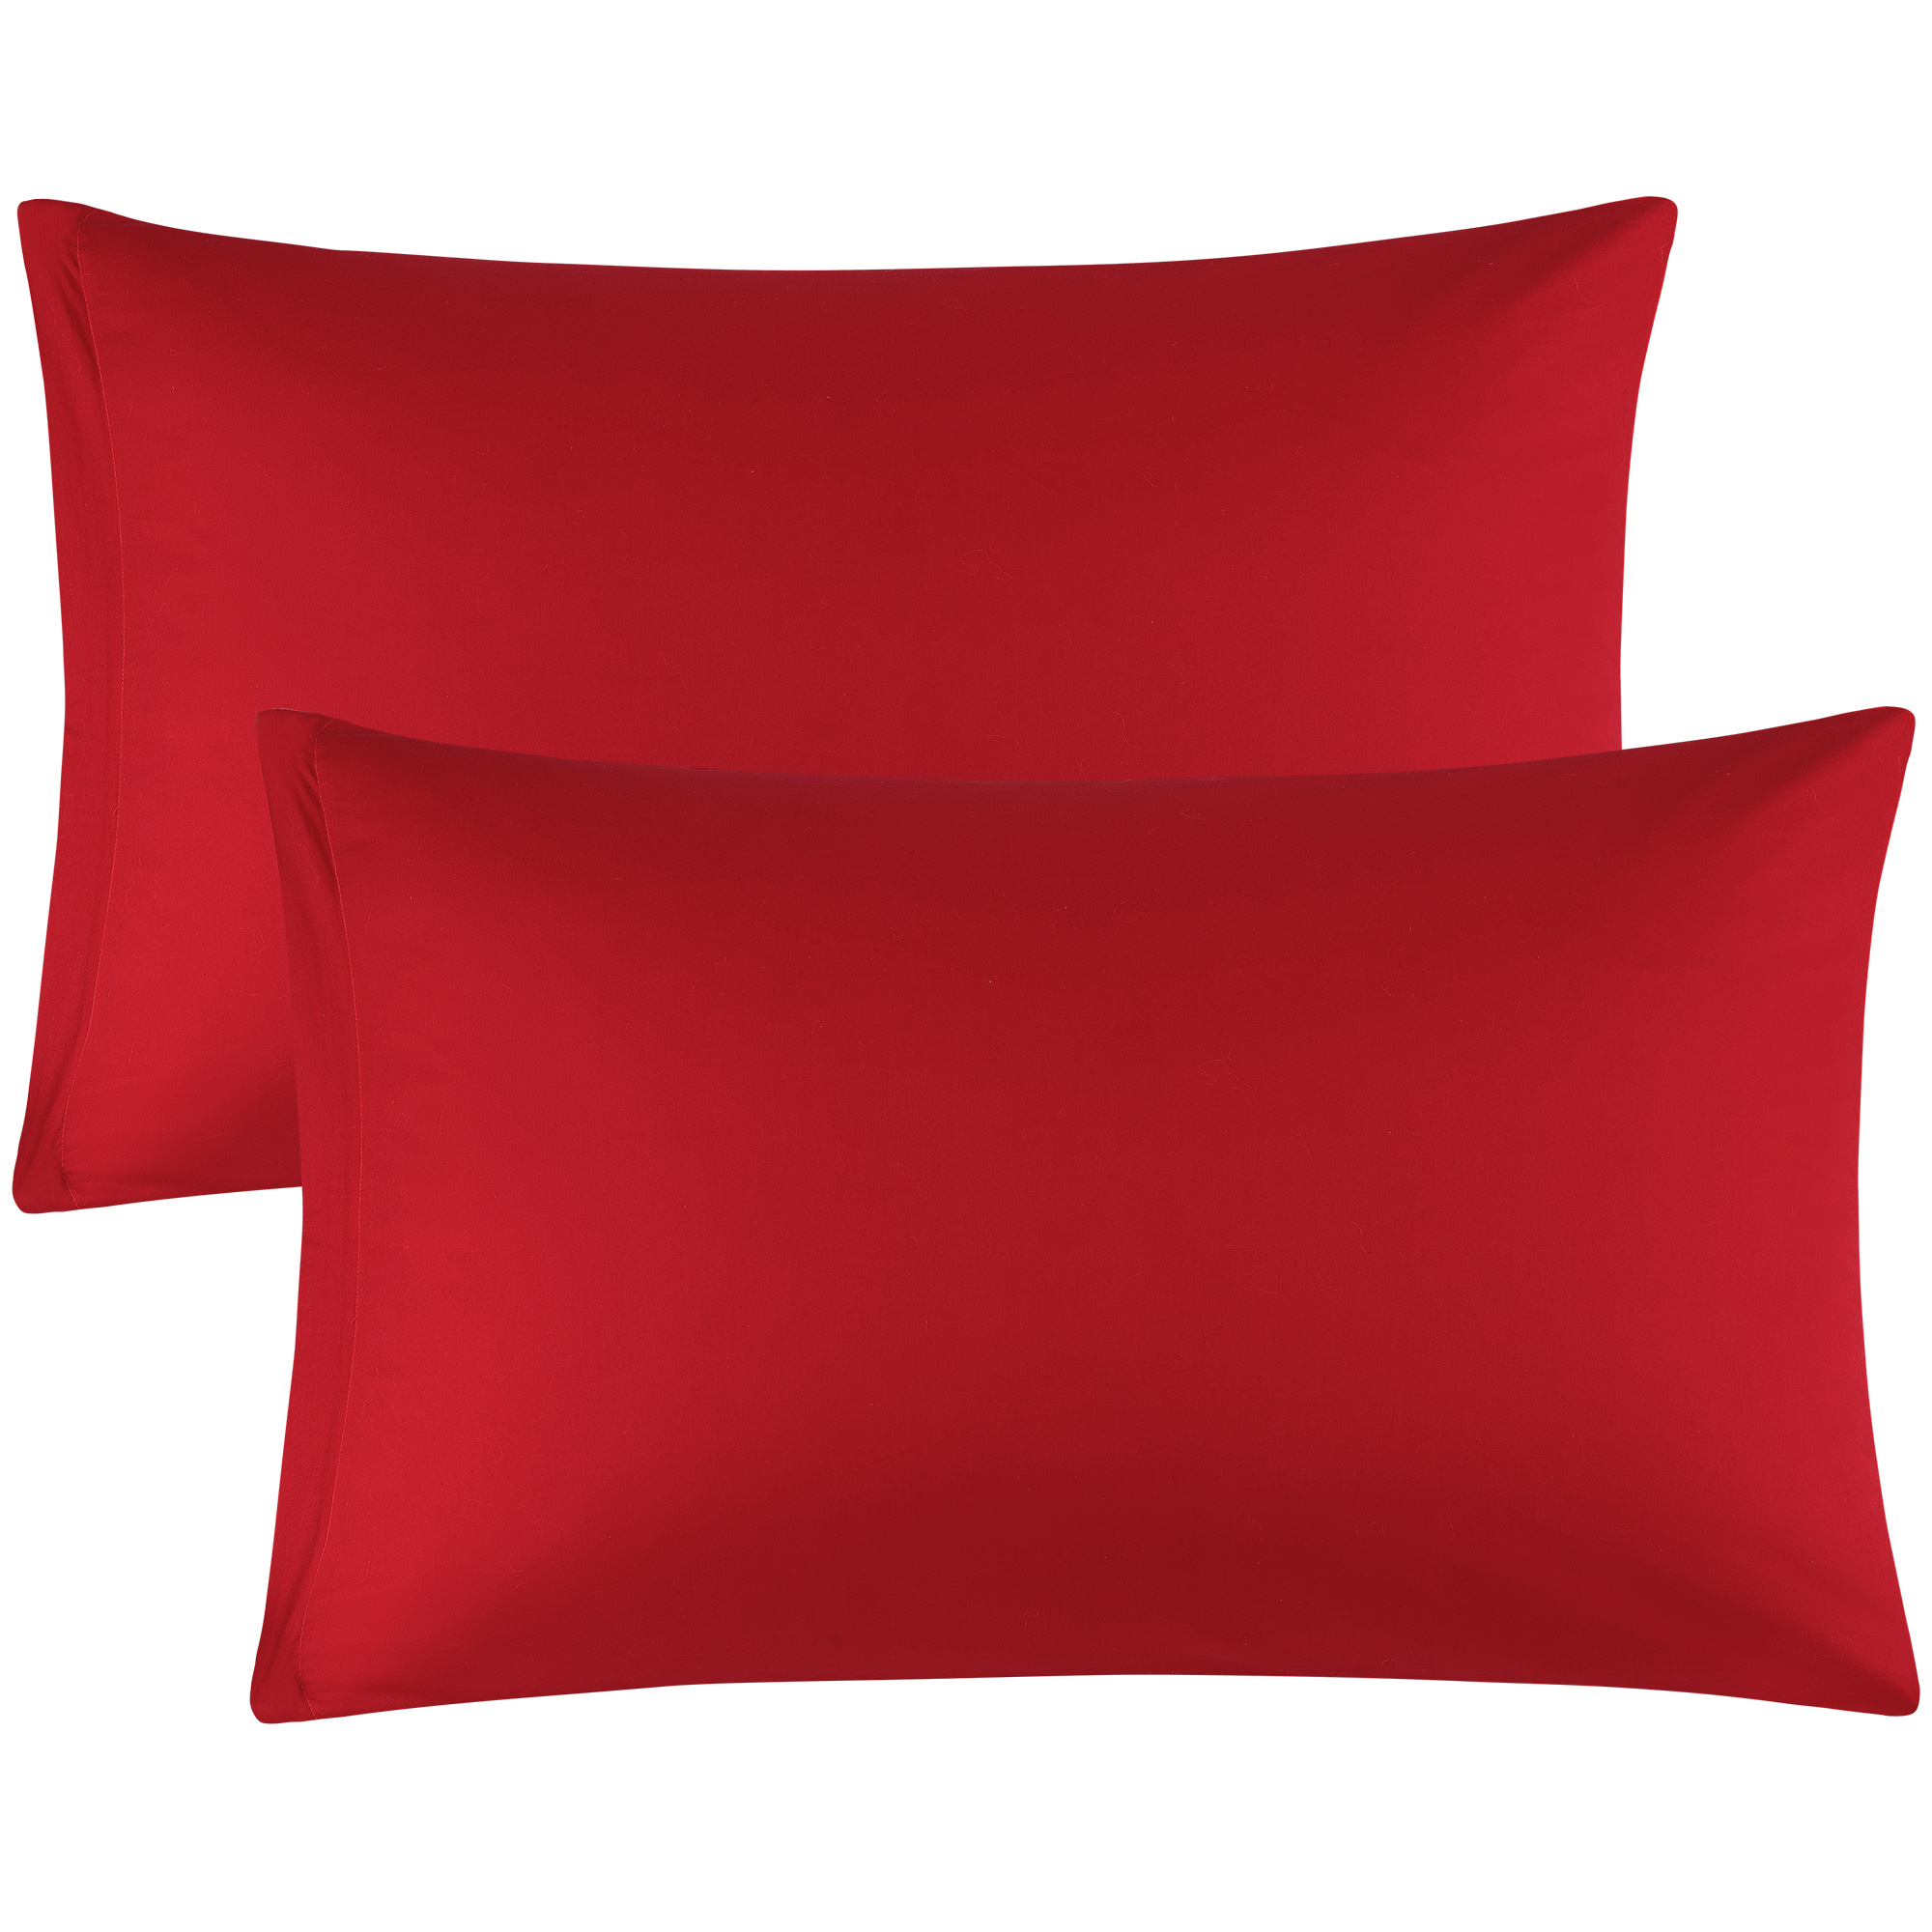 Zippered Cases Pillowcases Covers Egyptian Cotton 2-Pack (20 x 30 Inch, Red)